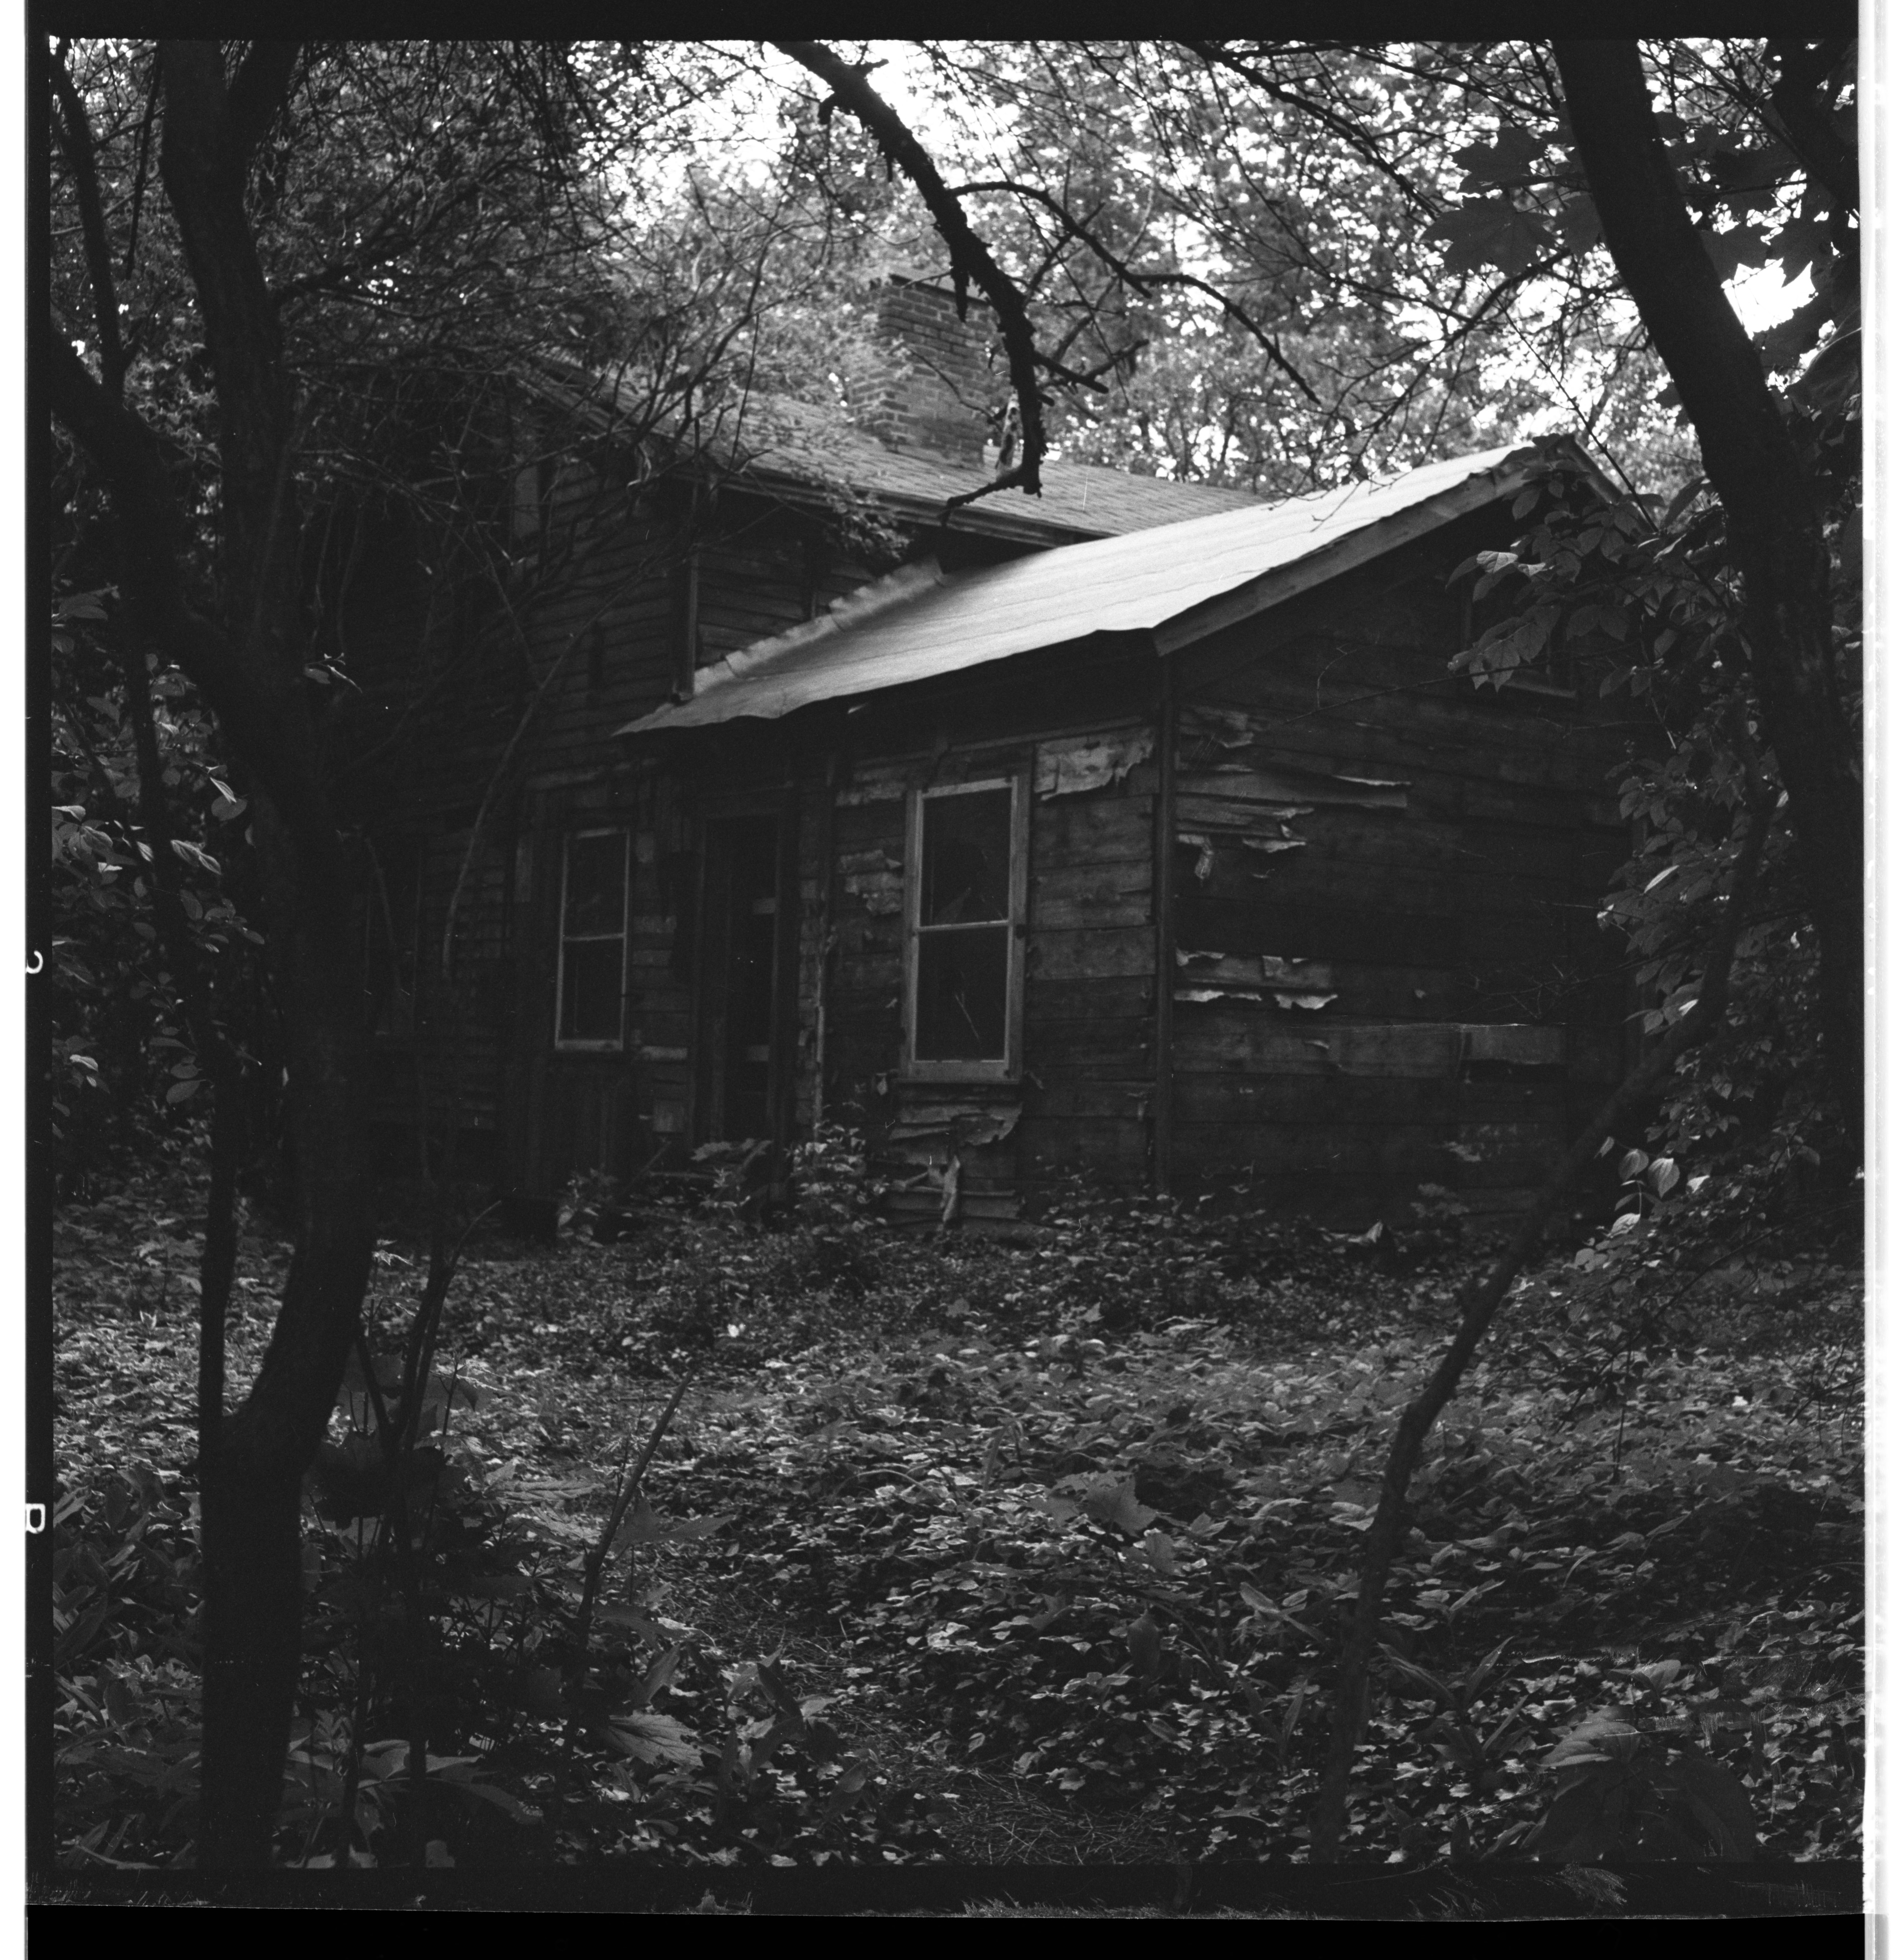 Mueller House To Be Torn Down For Park, June 1966 image